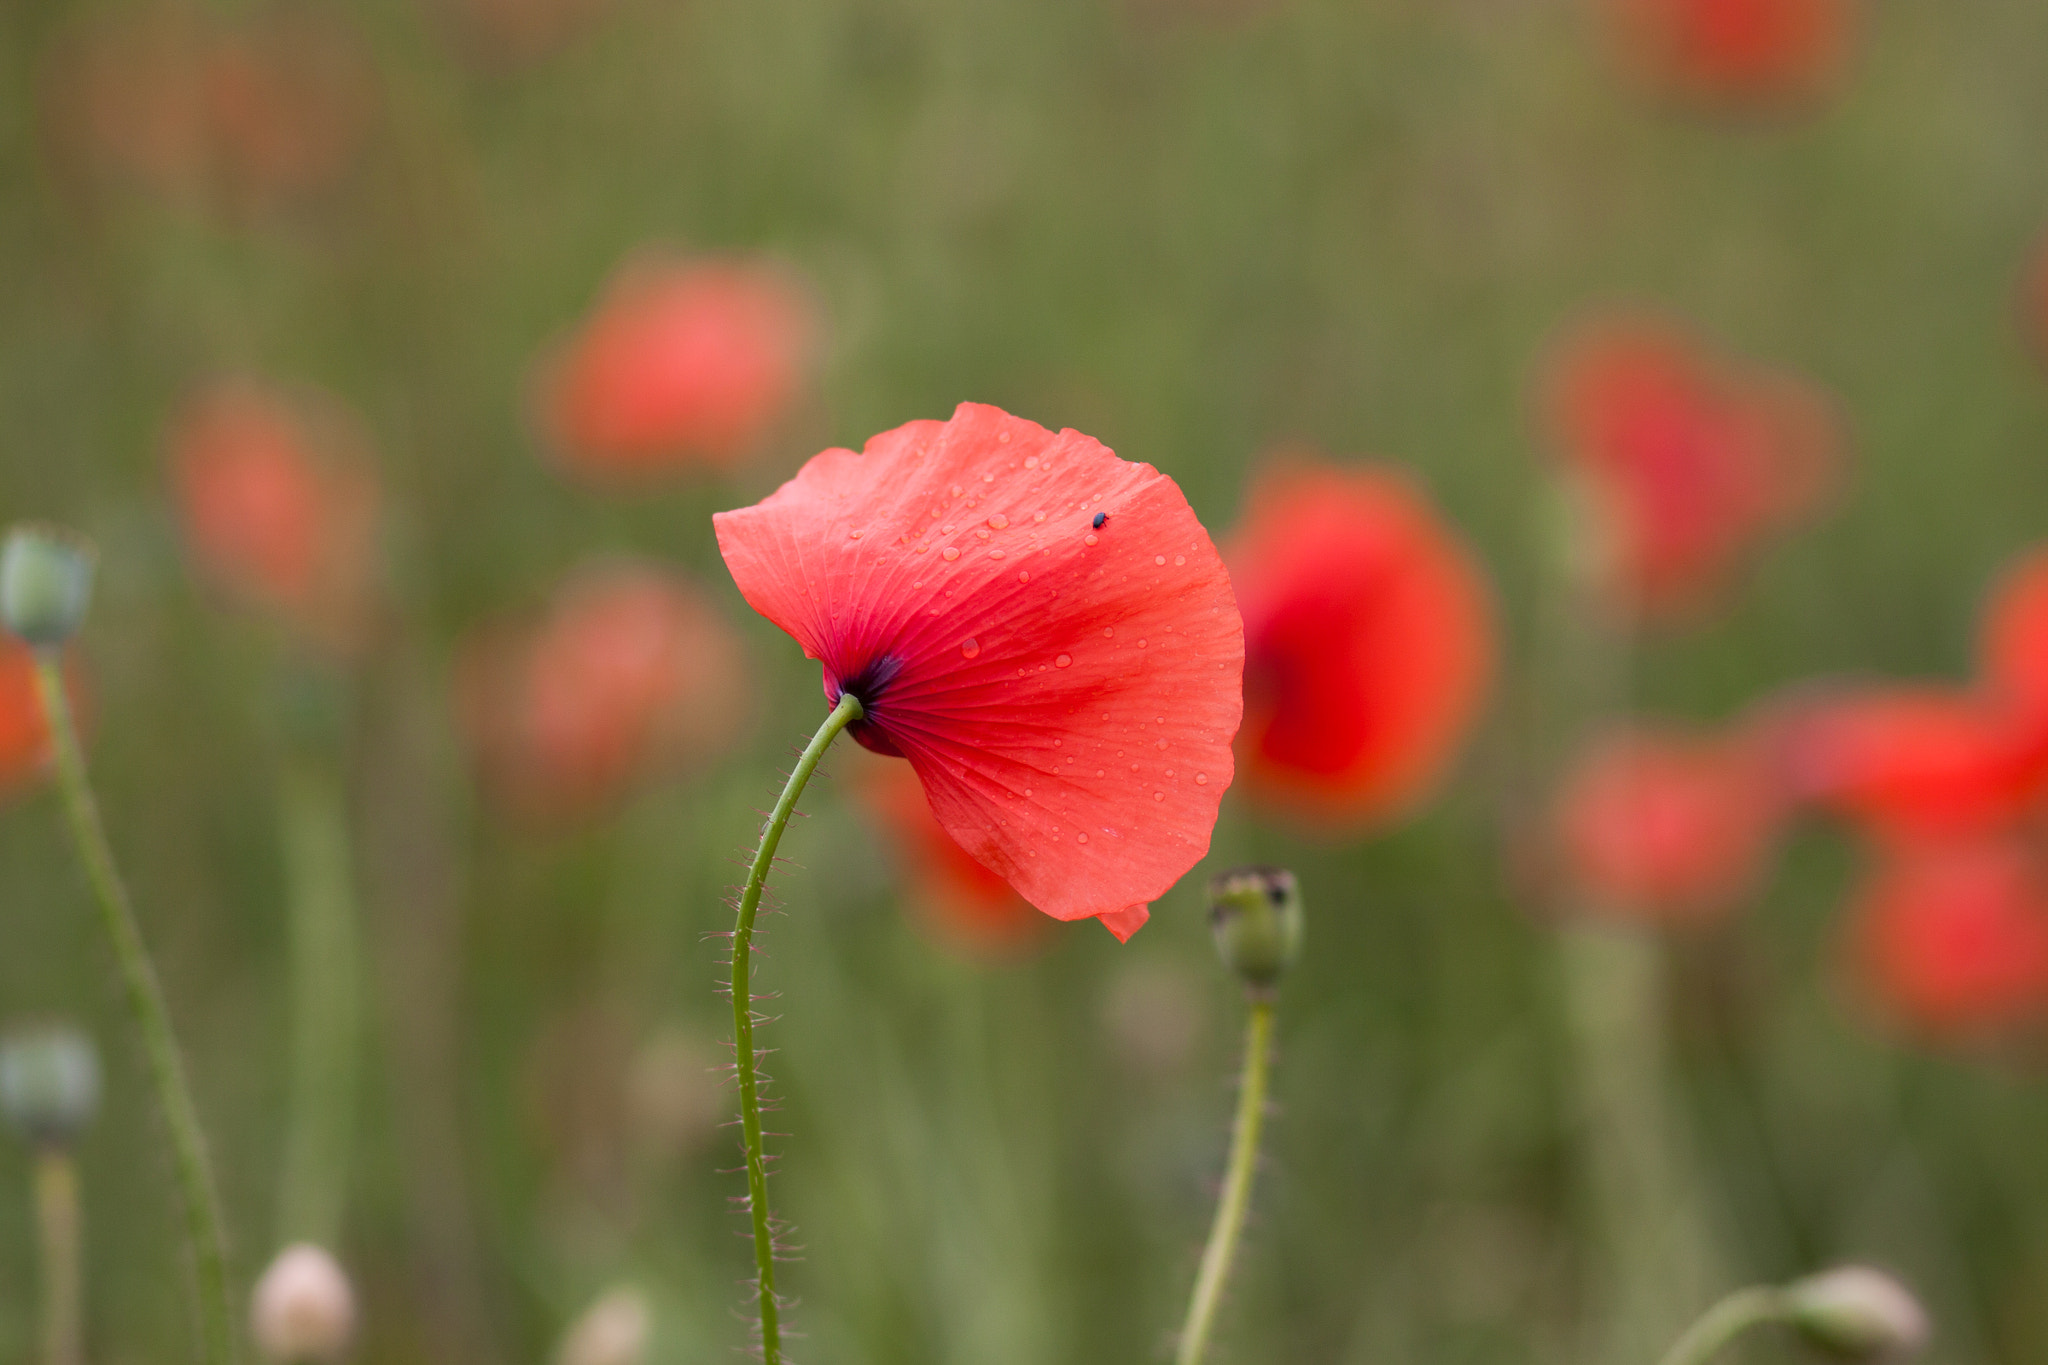 Photograph poppy by Andrea Schunert on 500px